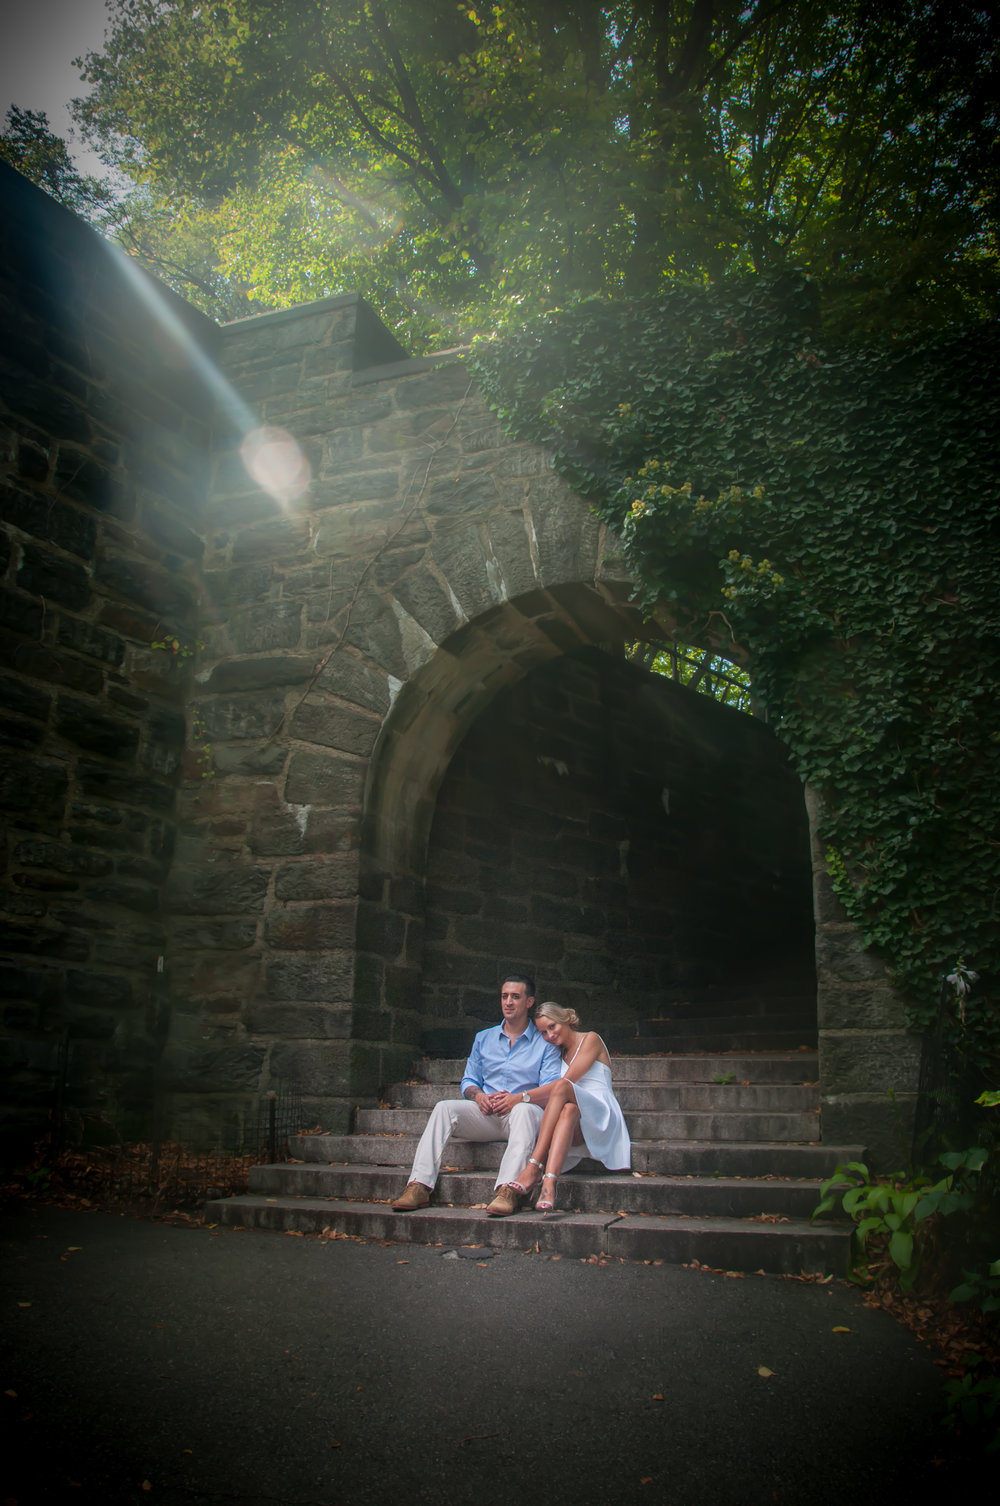 CArrieWestonStudios_NY_Portrait_Wedding_Photography_Northport_JoeandSarah-8.jpg